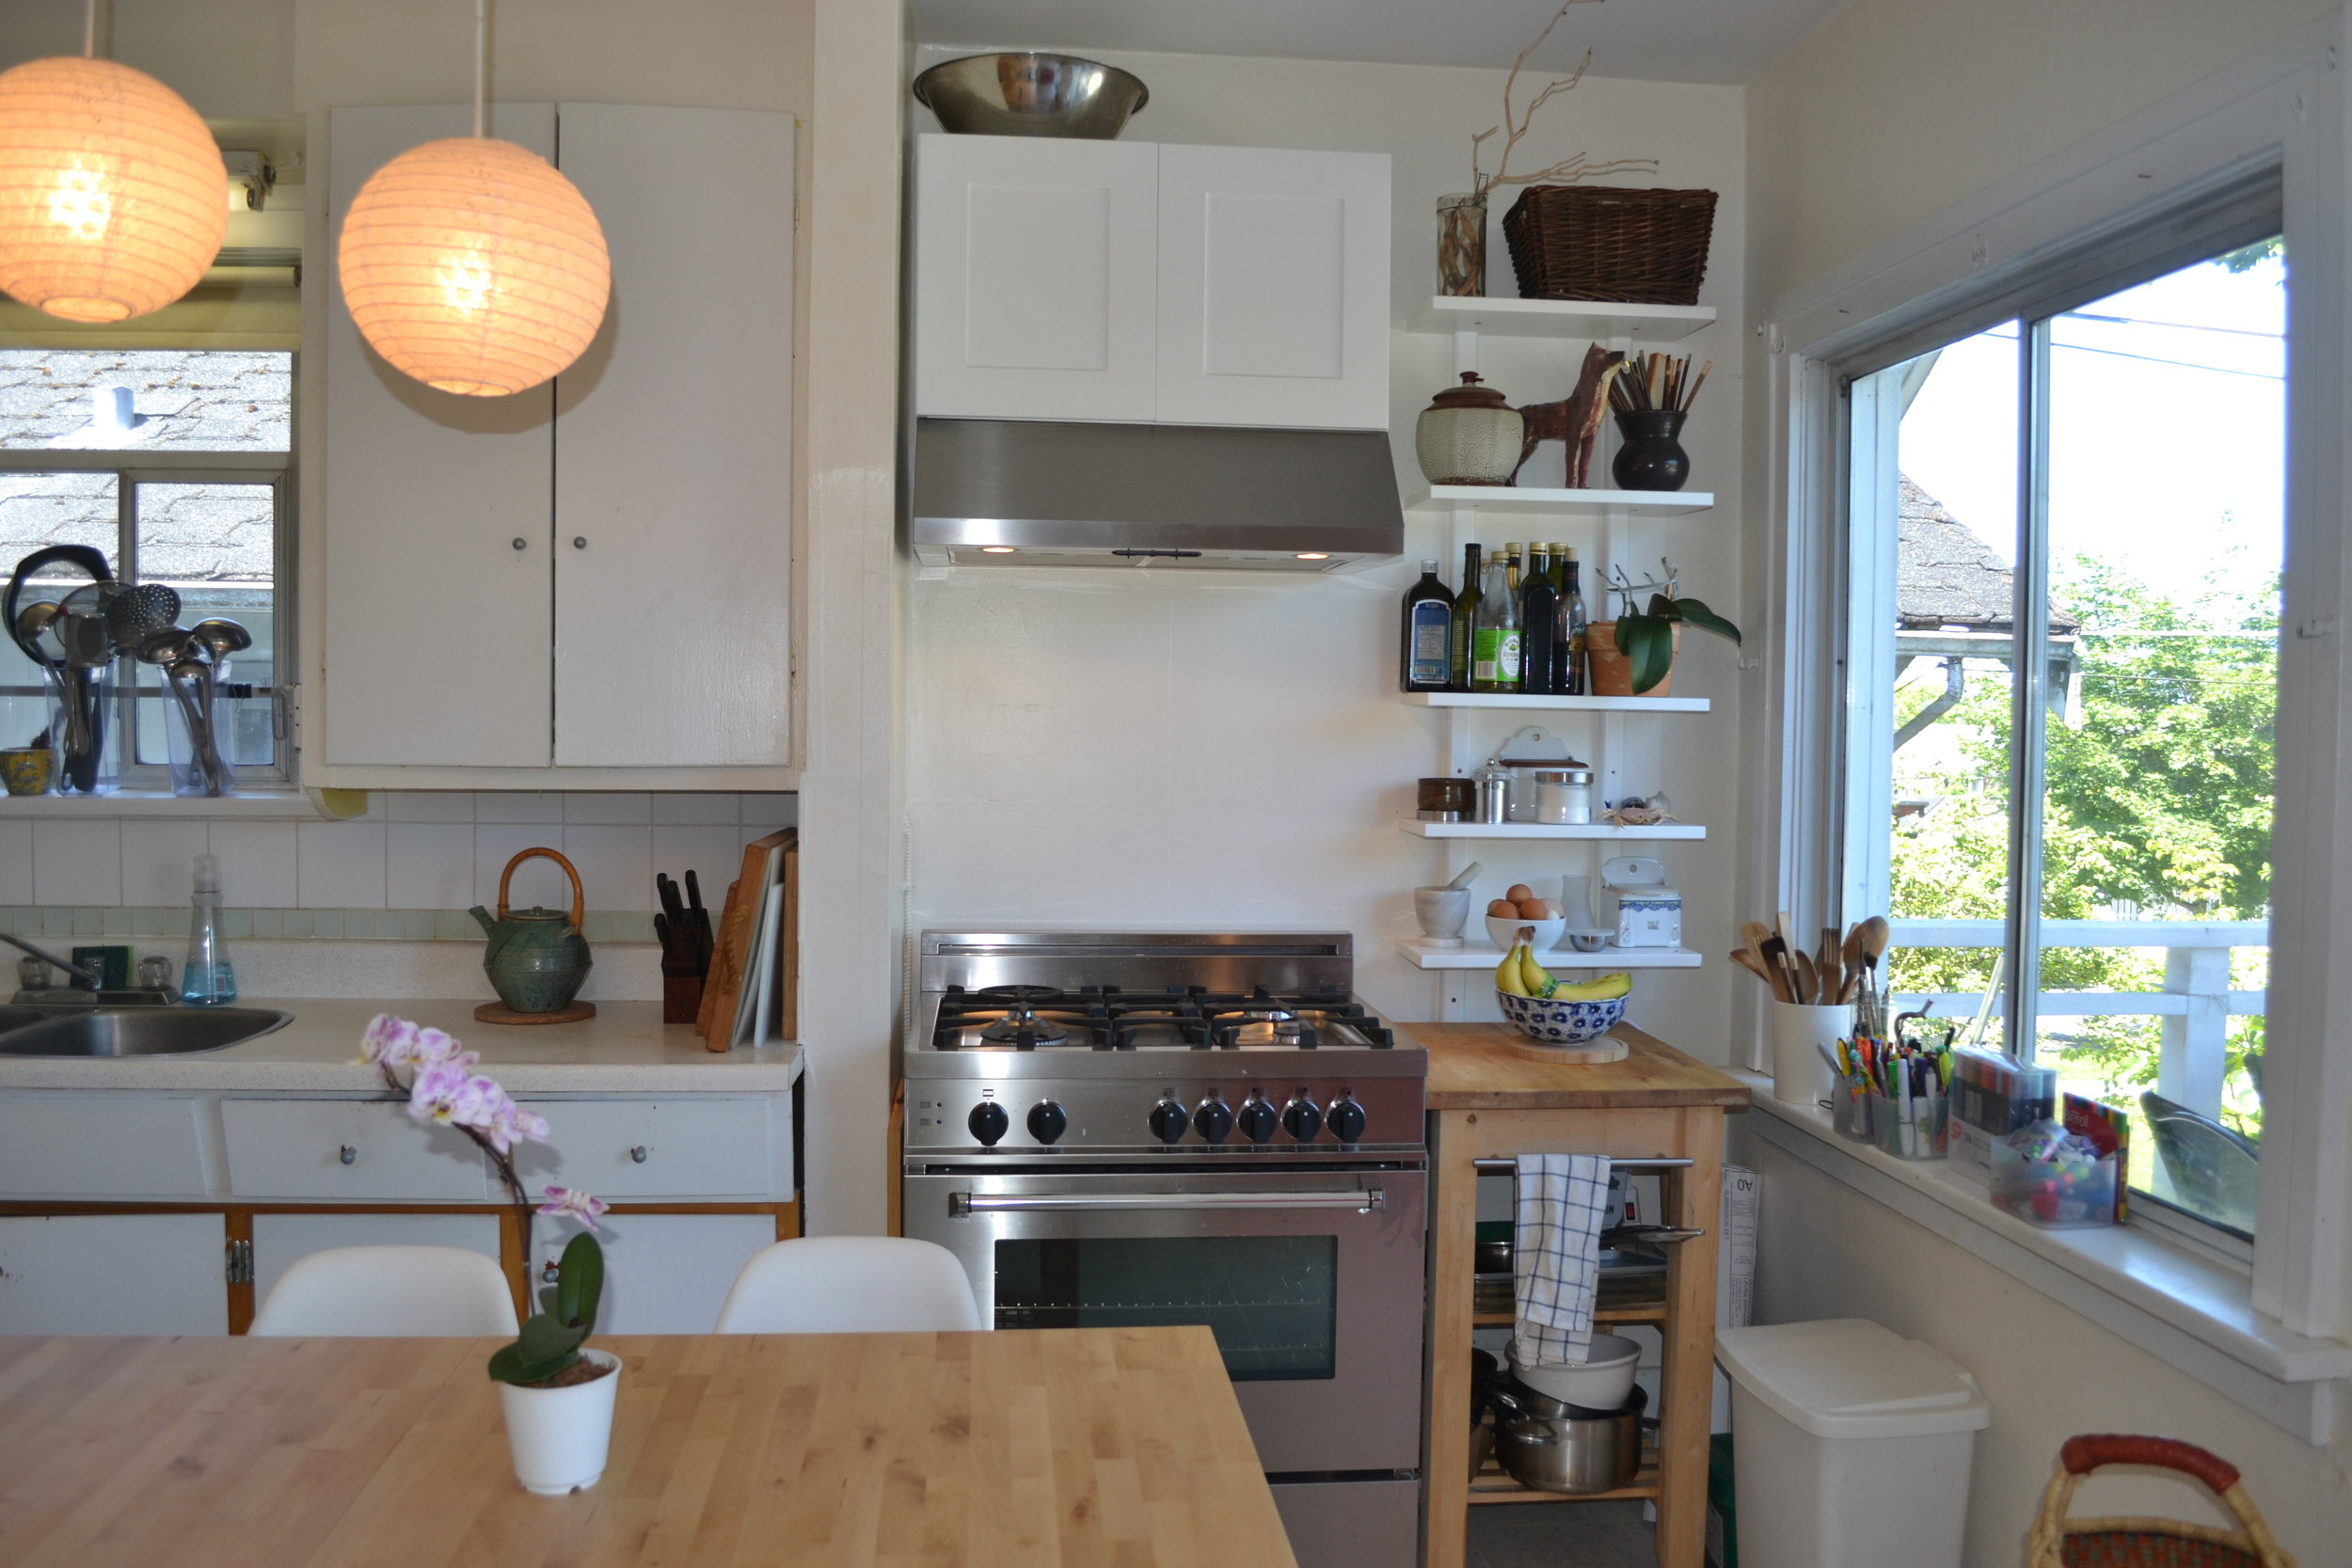 Our backpacker friendly kitchen.